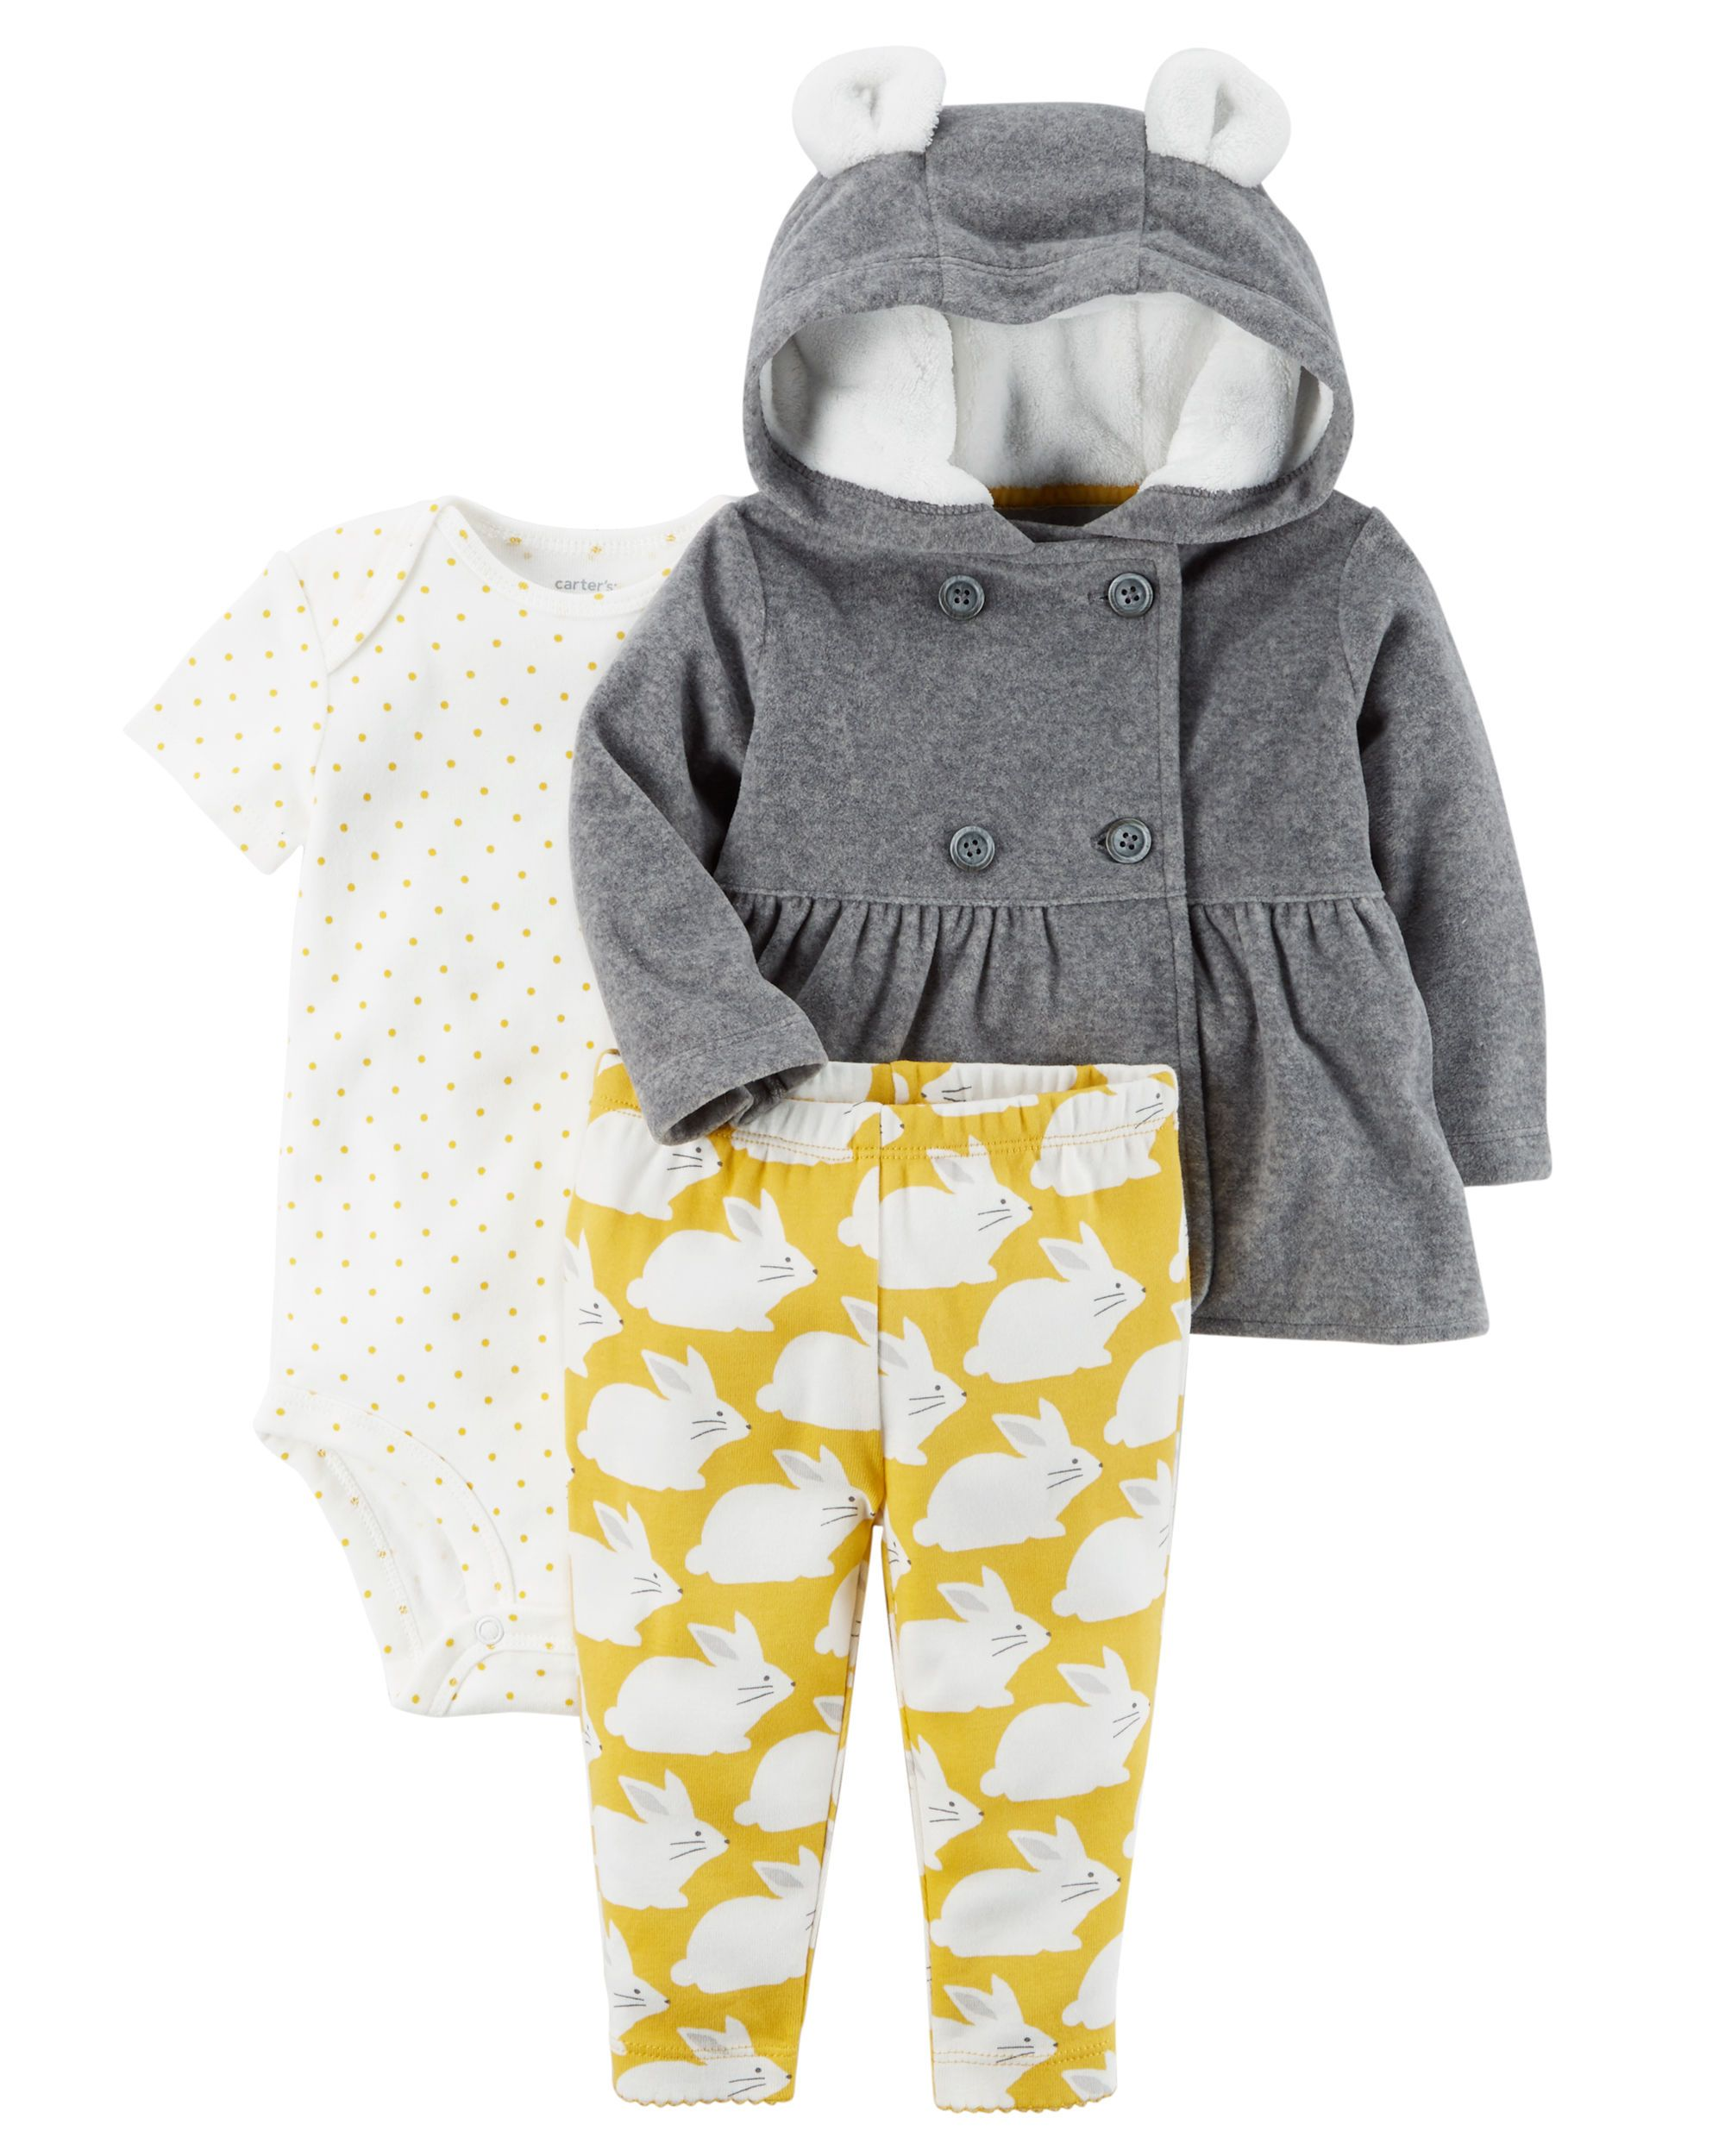 56a28c26e Baby Girl 3-Piece Little Jacket Set   Carters.com   Scarlet and ...